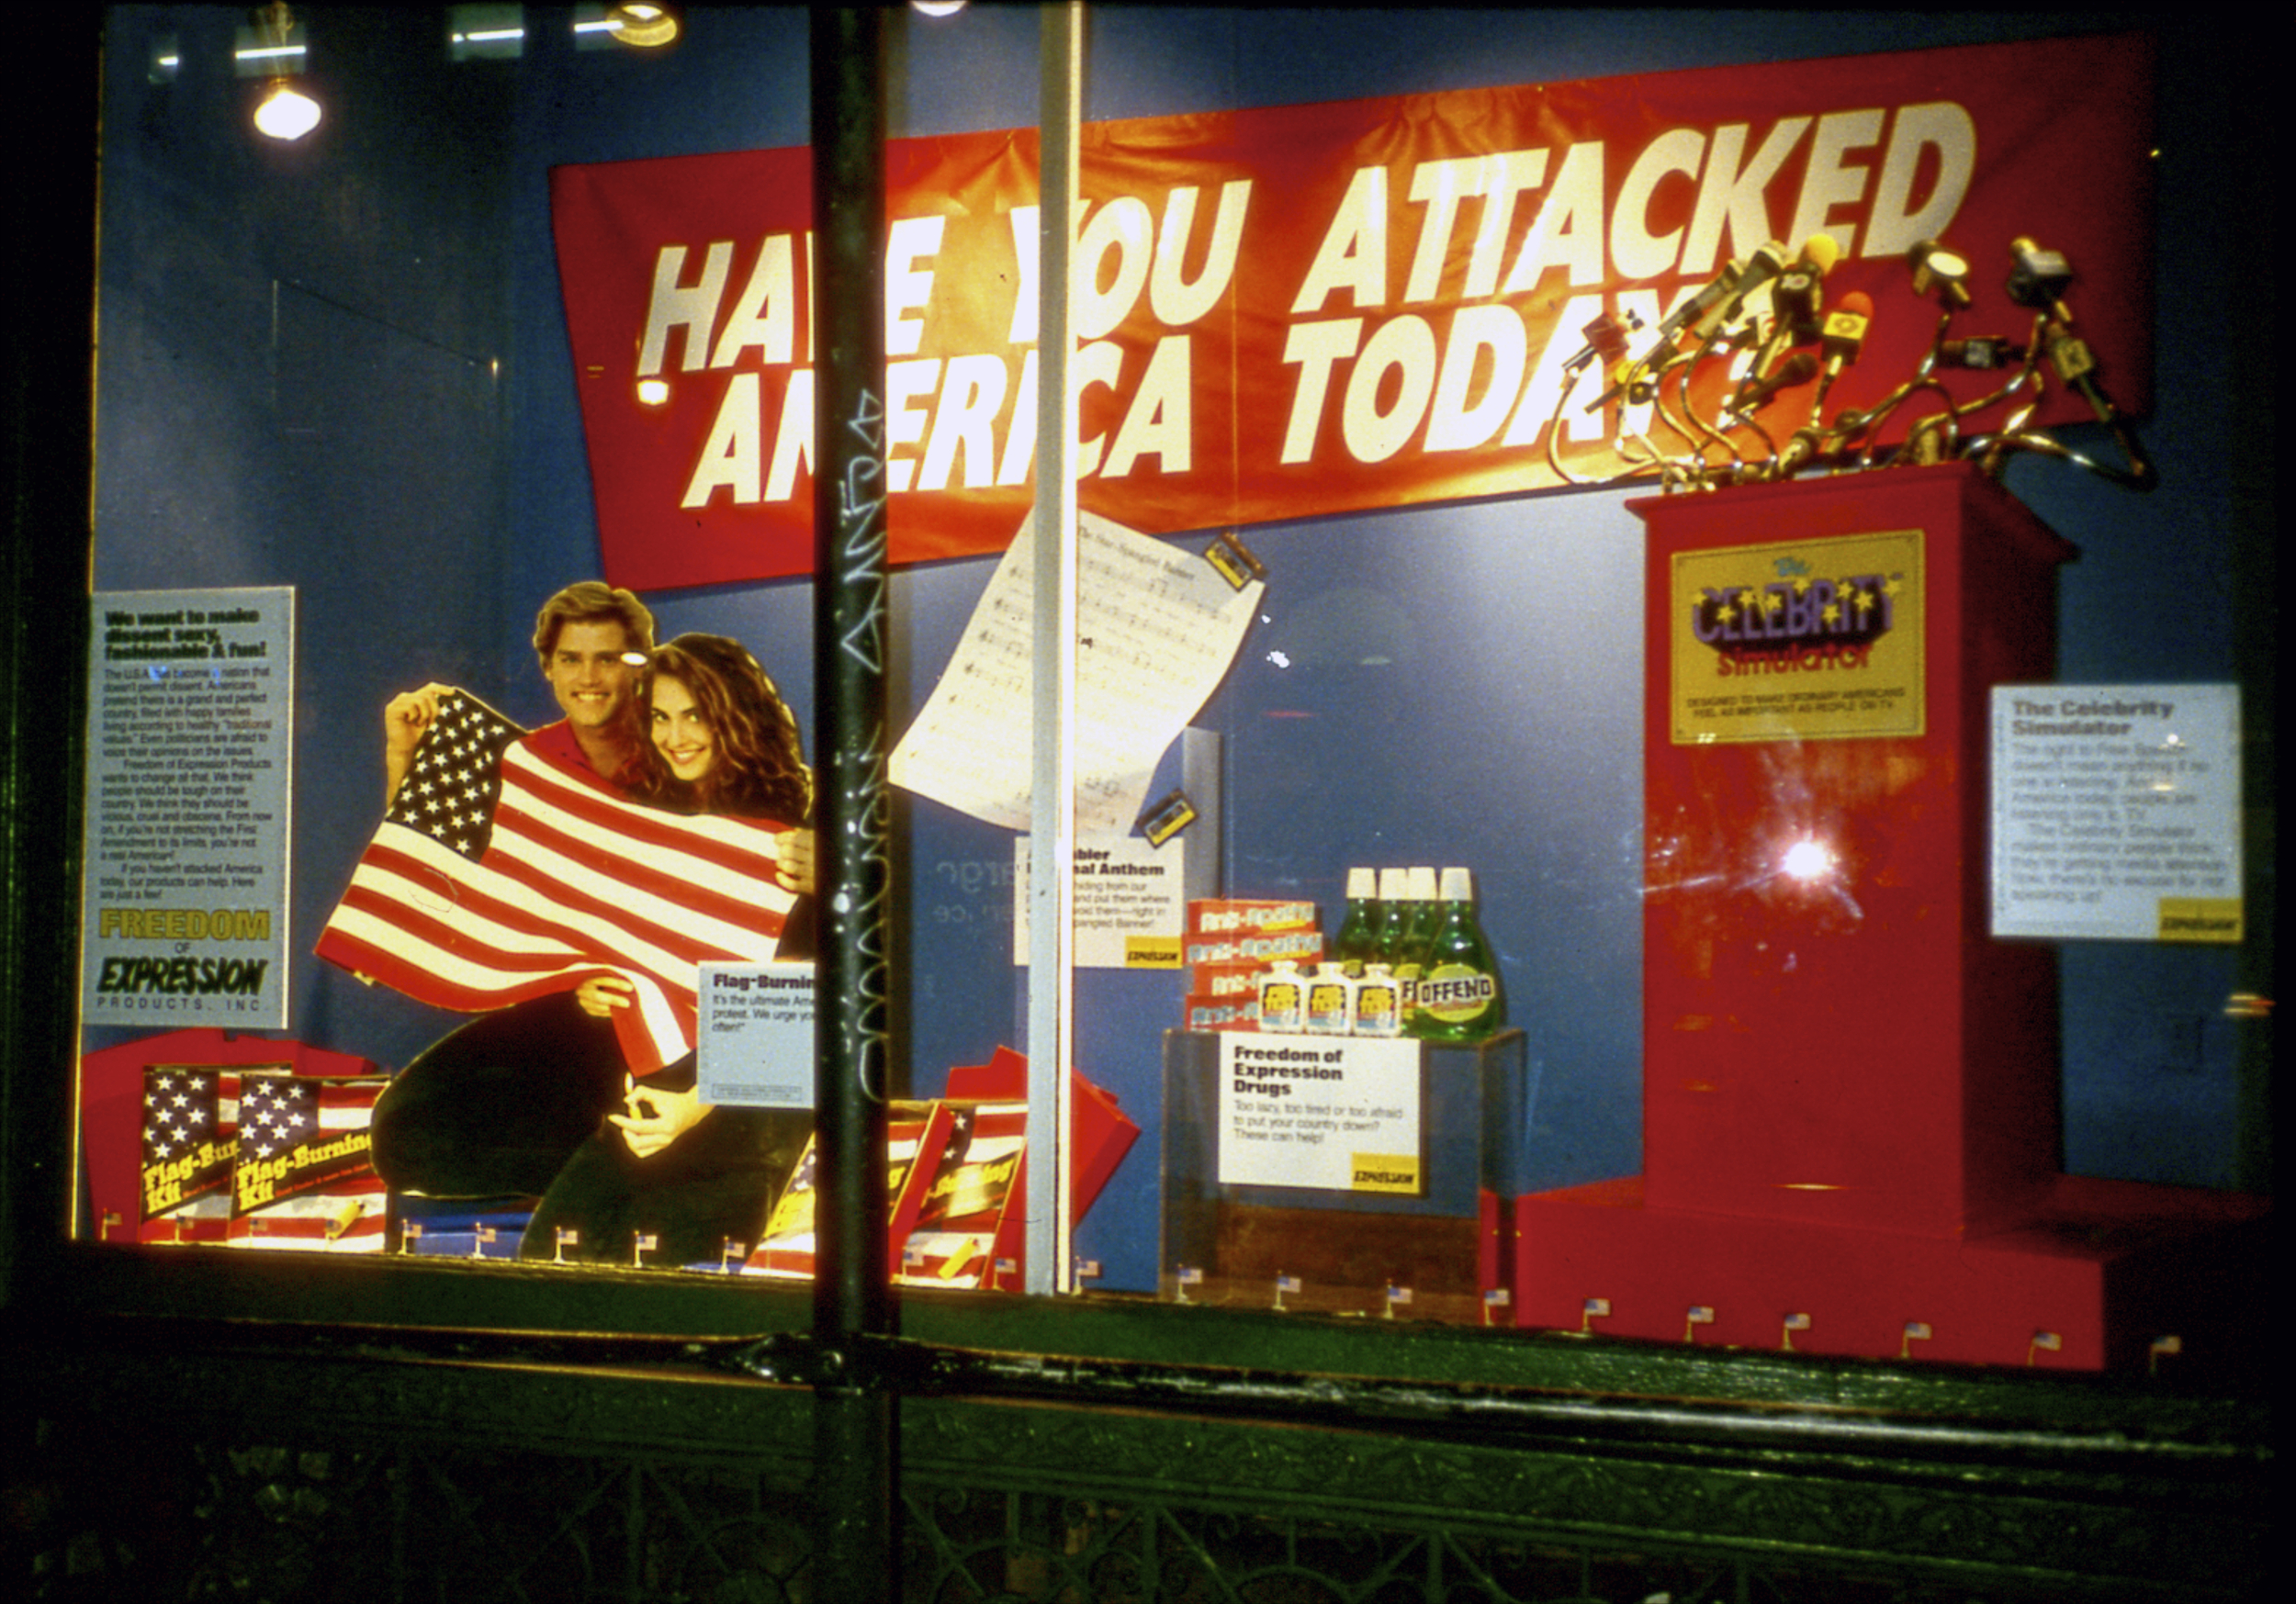 Have You Attacked America, New Museum, NY, 1989